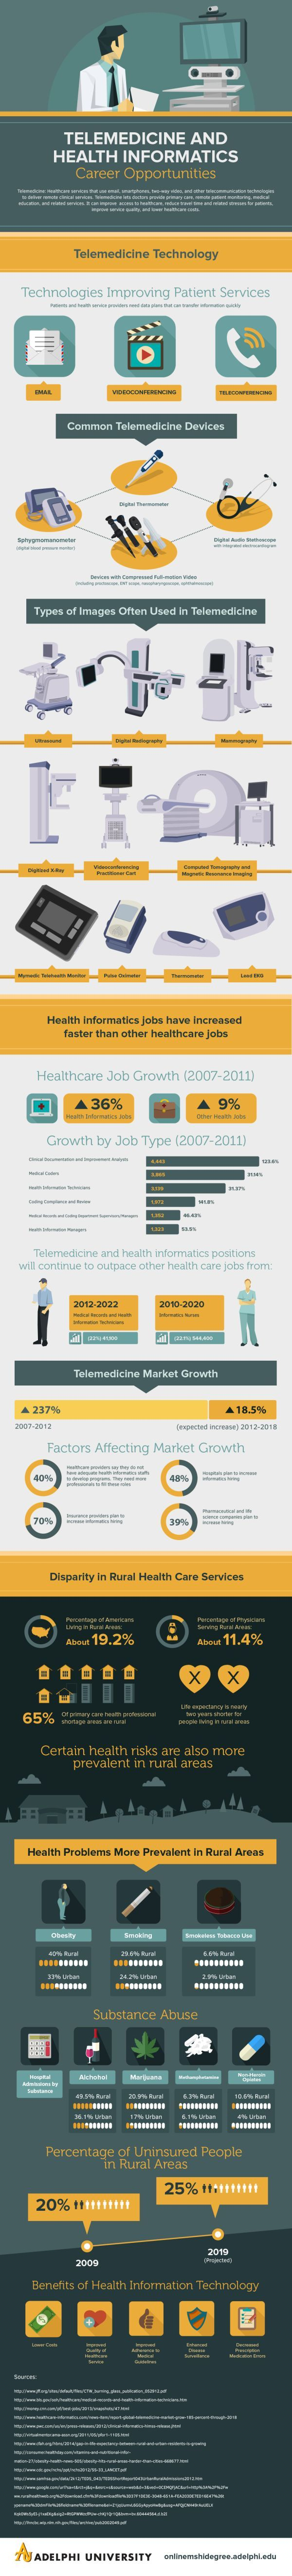 Infographic: Why telemedicine is the hottest field #ehealth